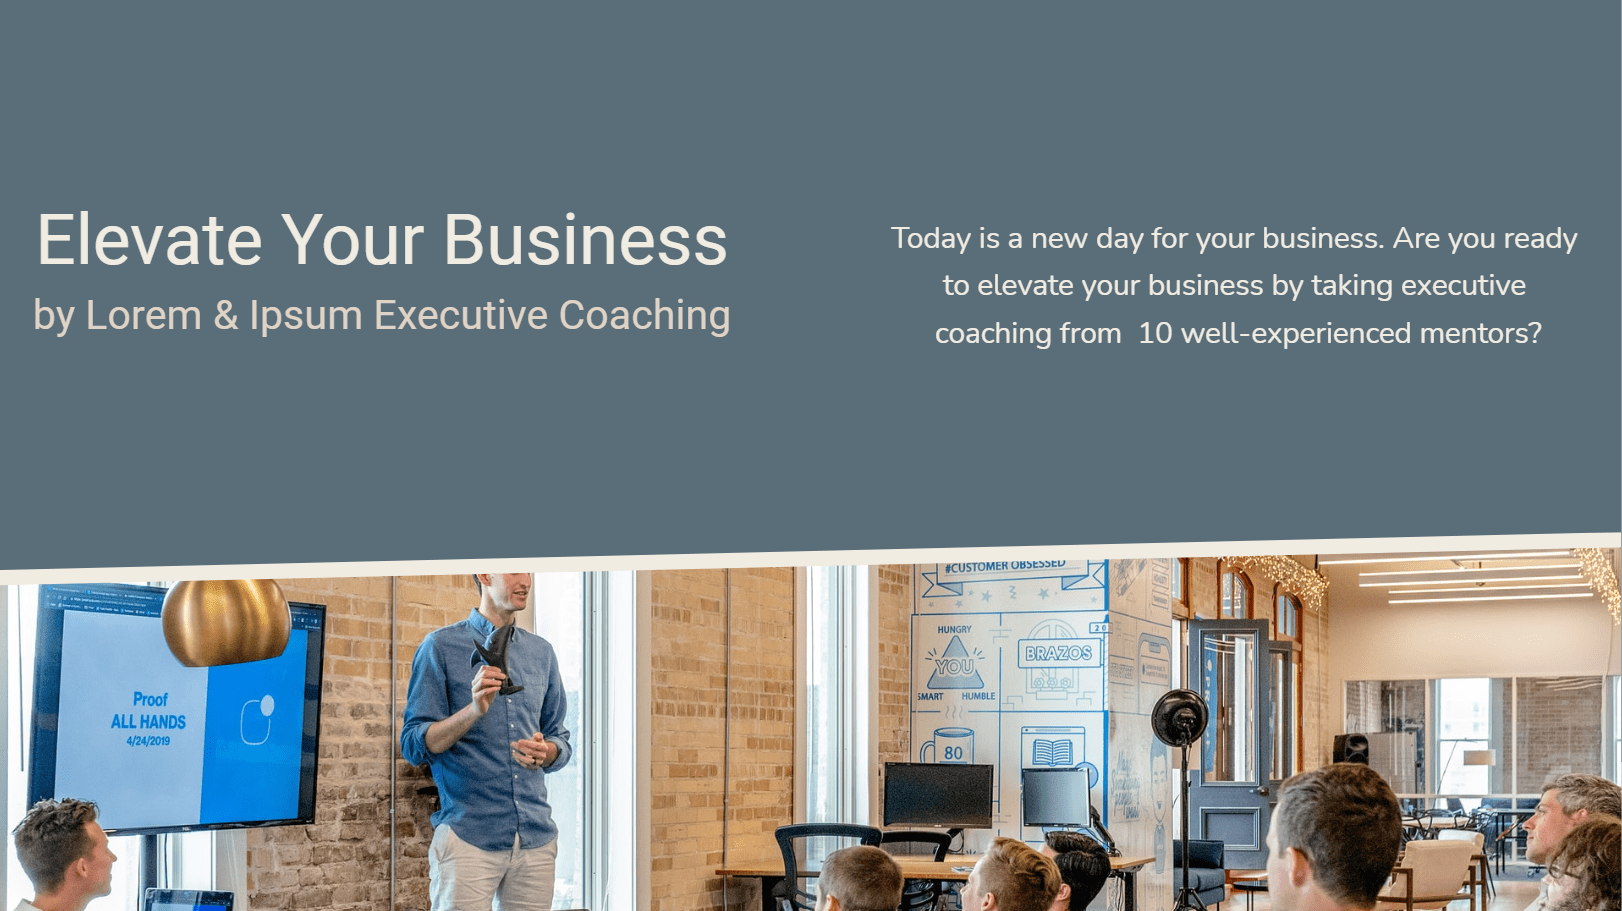 The executive coaching proposal template is prepared for coaching companies to introduce their company, services, packages, terms&conditions and collect leads by the form feature. By duplicating this content firms can create proposals only by changing the content within minutes. The user-friendly dashboard enables you to manage your proposals and analytics easily.